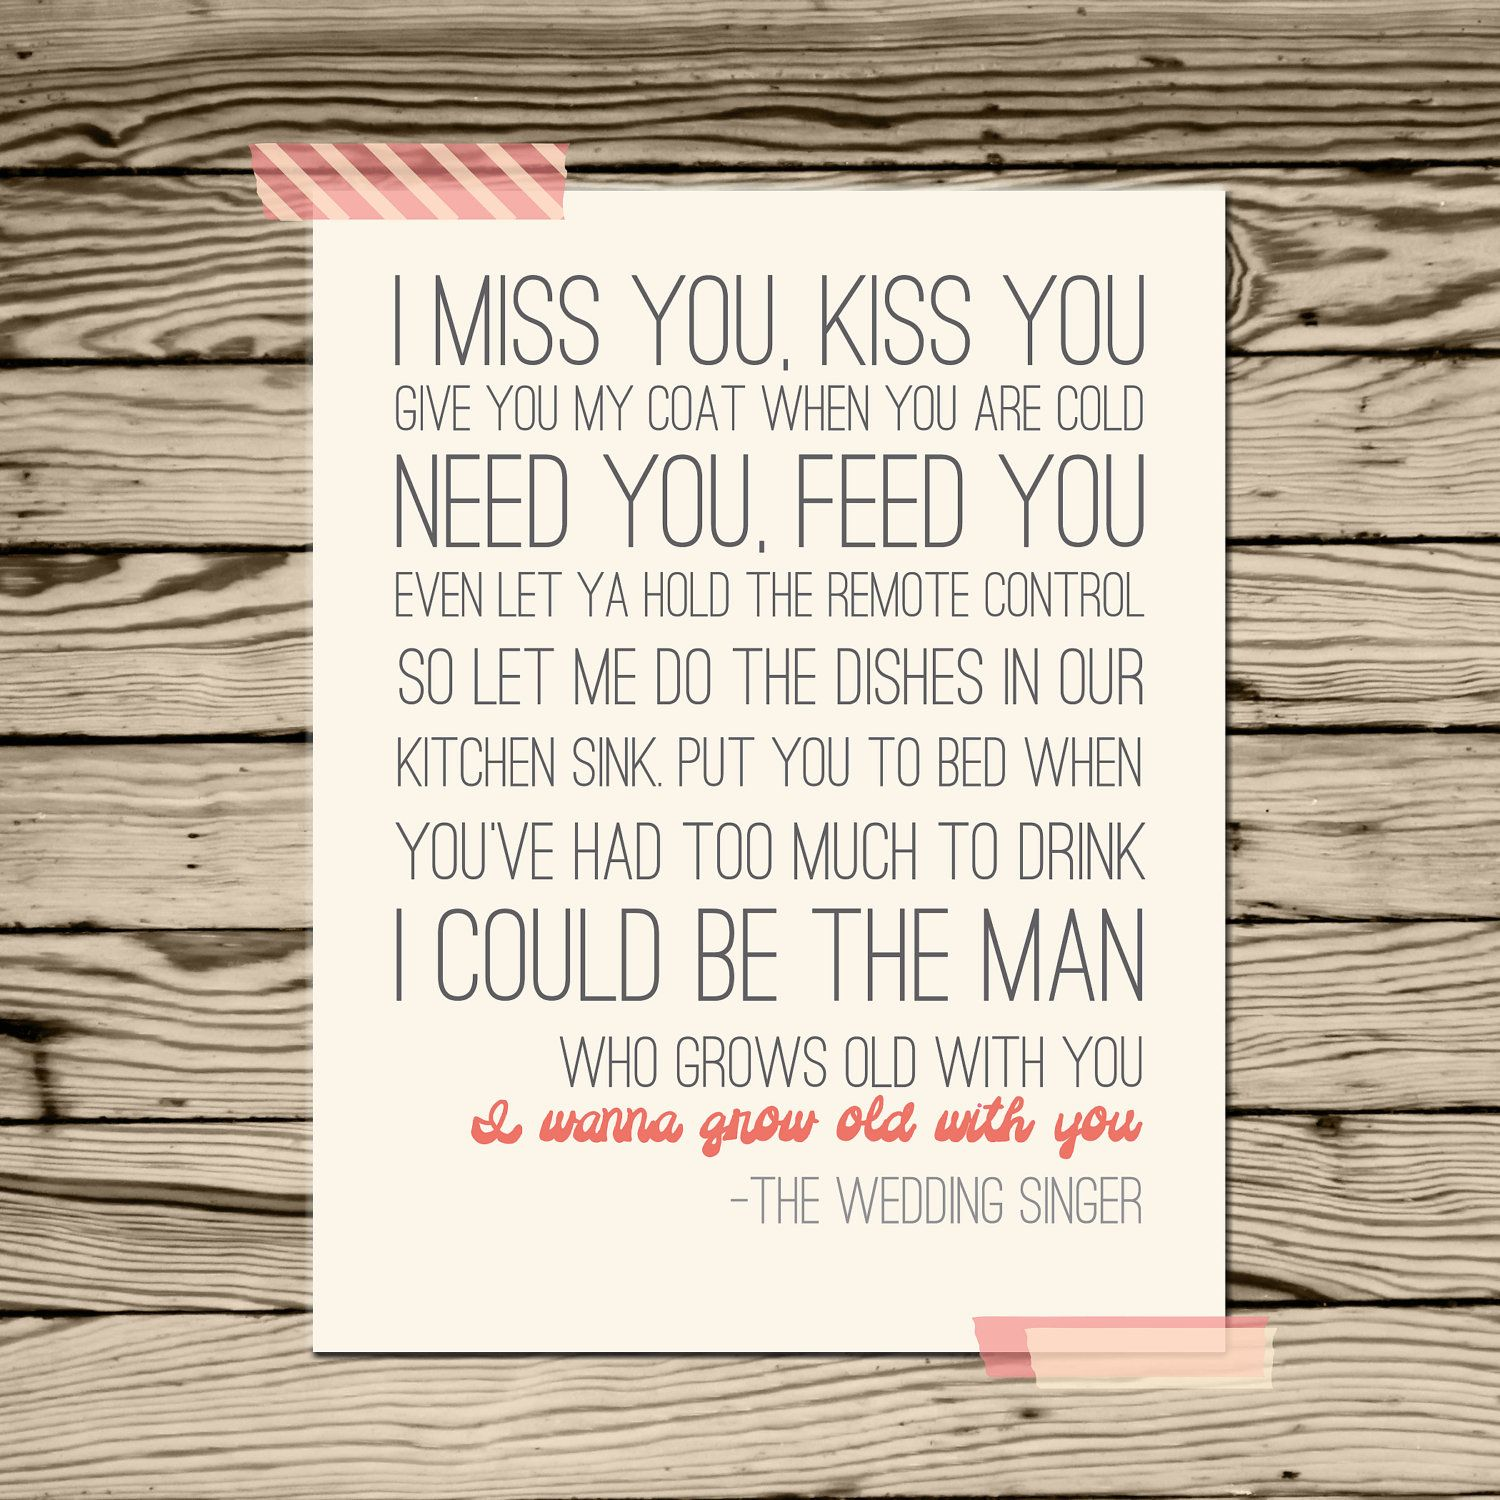 I Wanna Grow Old With You Wedding Singer Quote Poster Print Adam Sandler Funny Song Reception Decor On Etsy